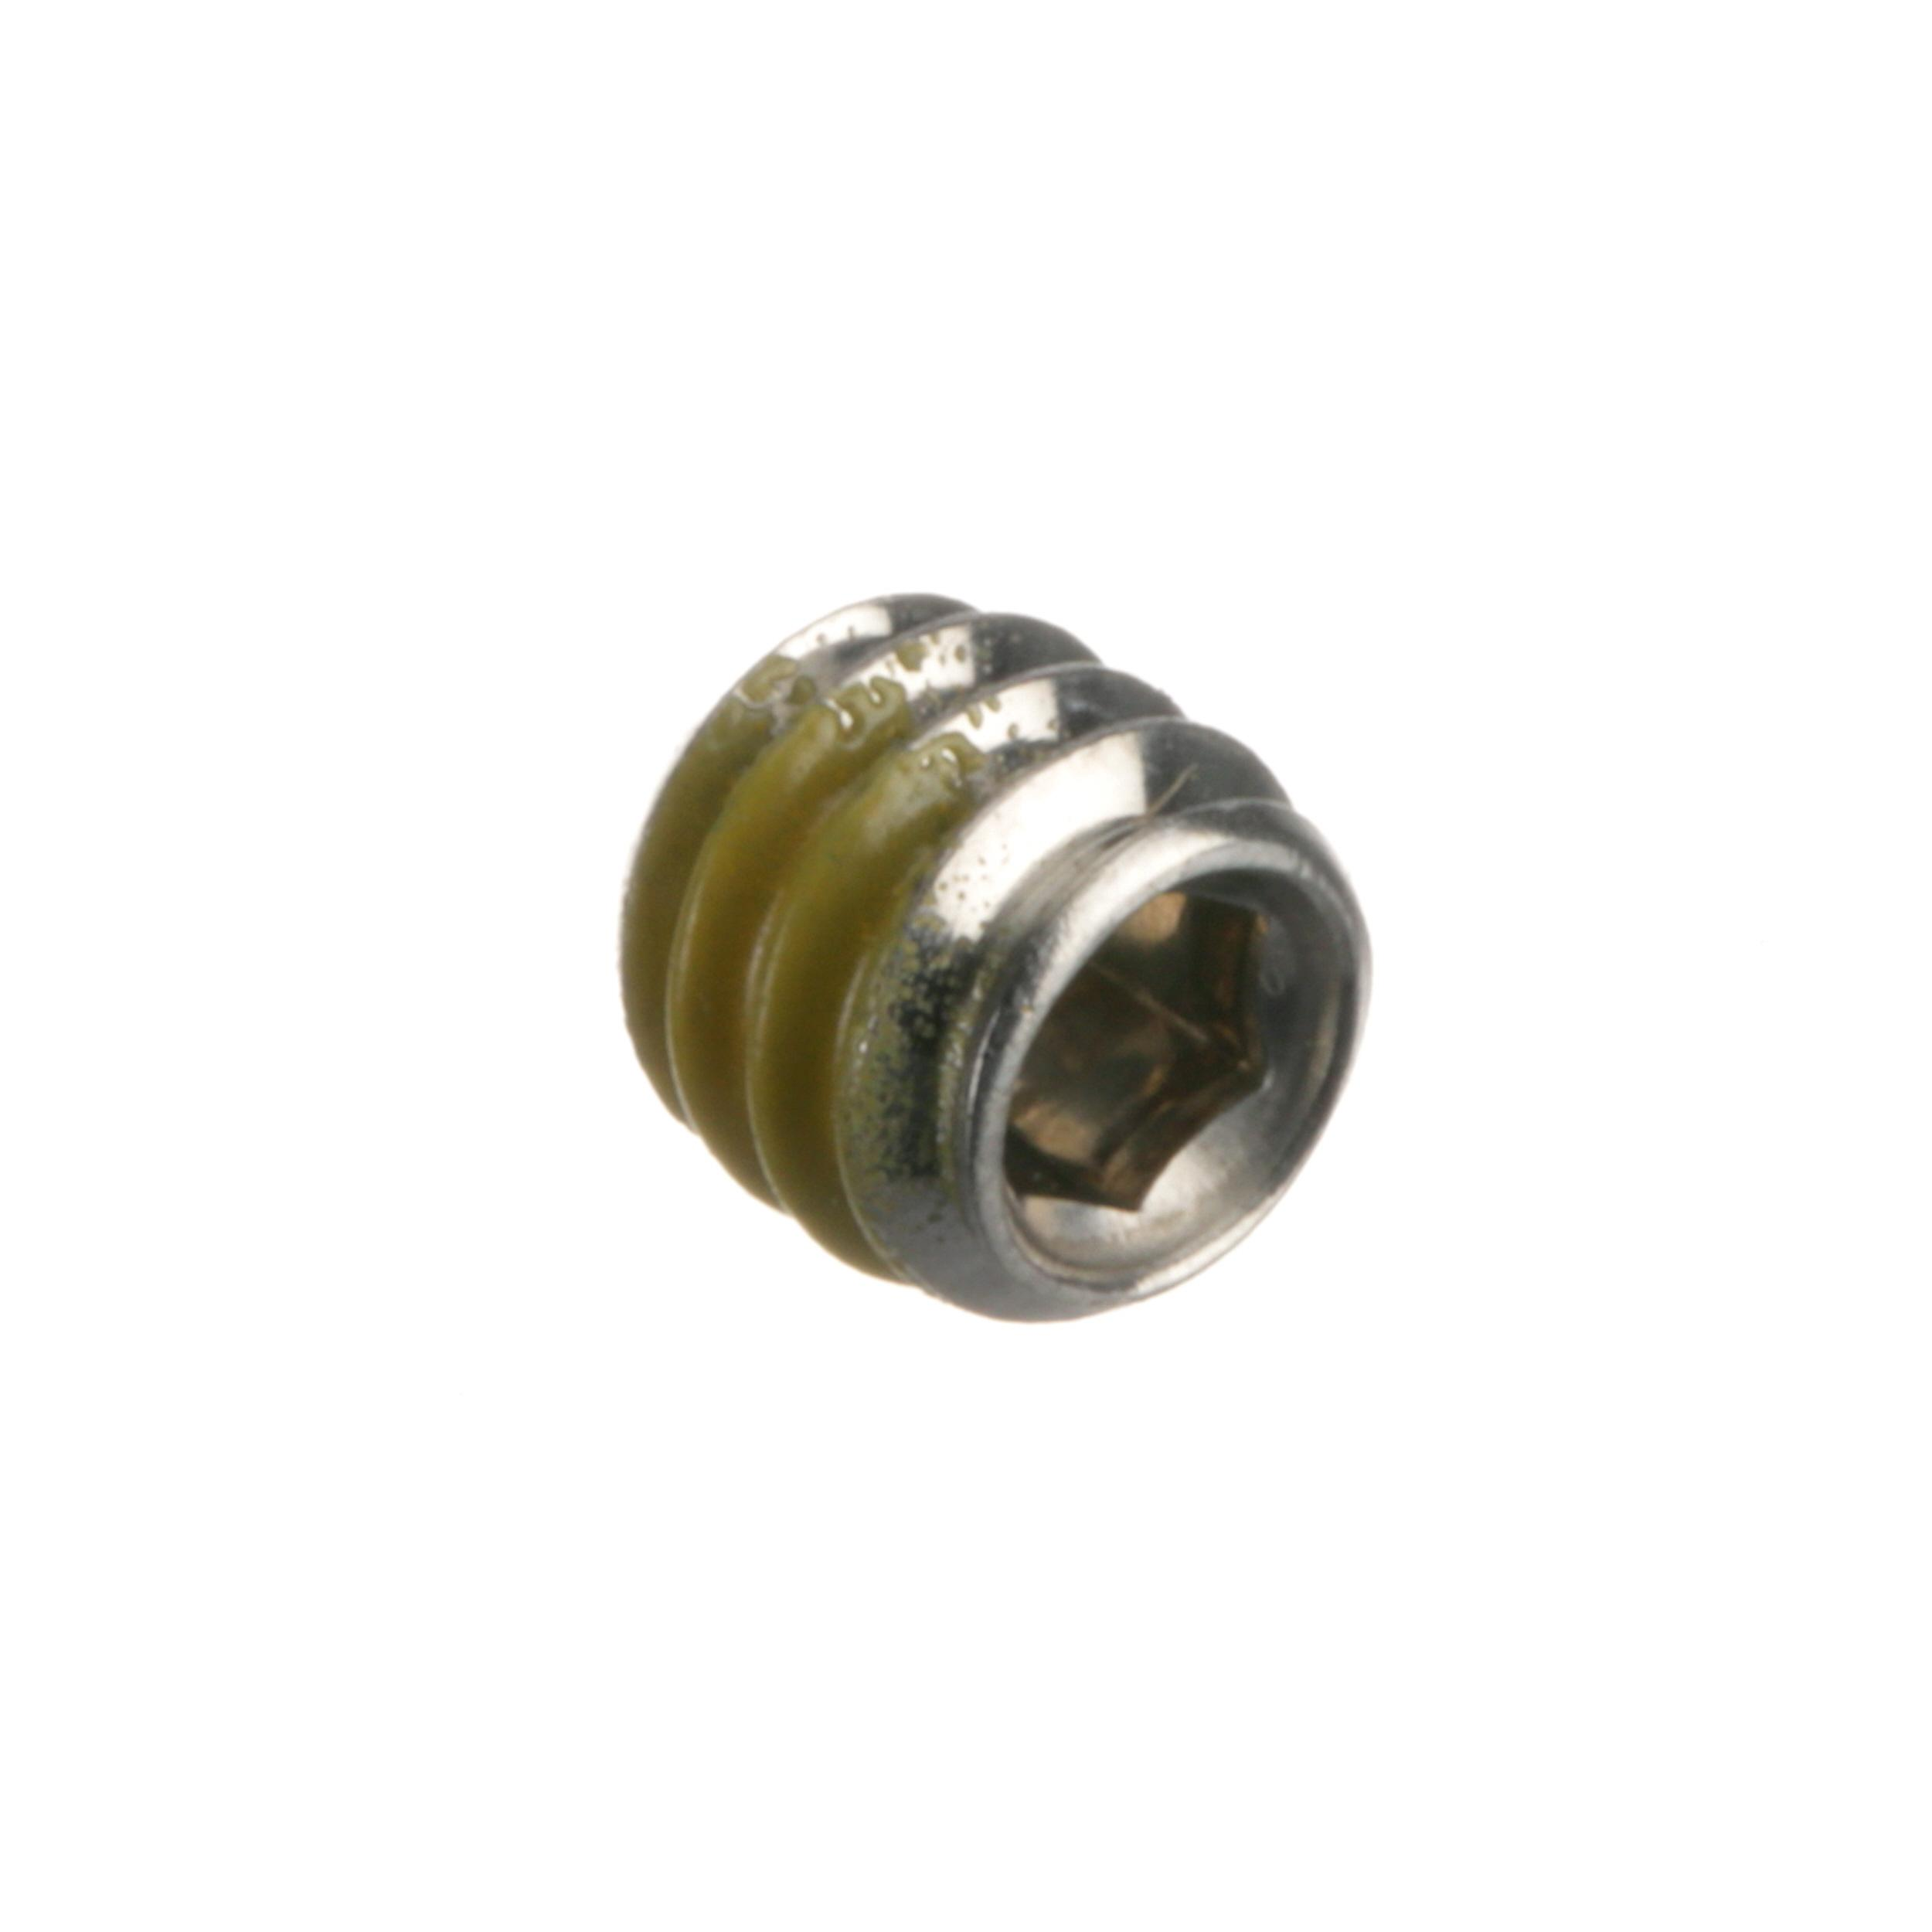 HOBART SCREW